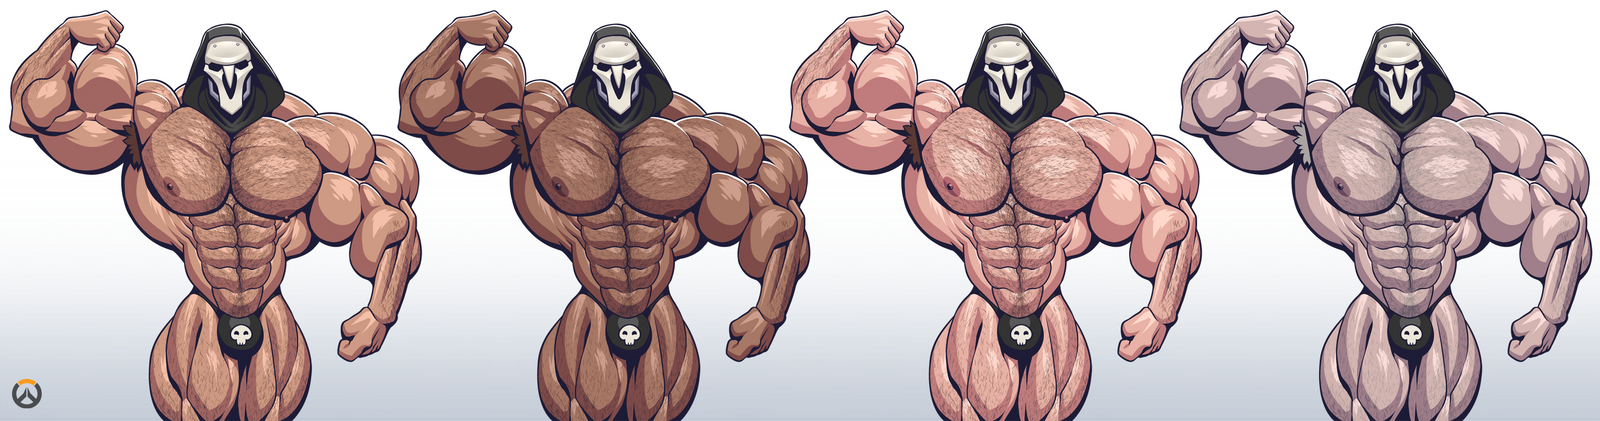 Overwatch: 4 Shades of Reaper